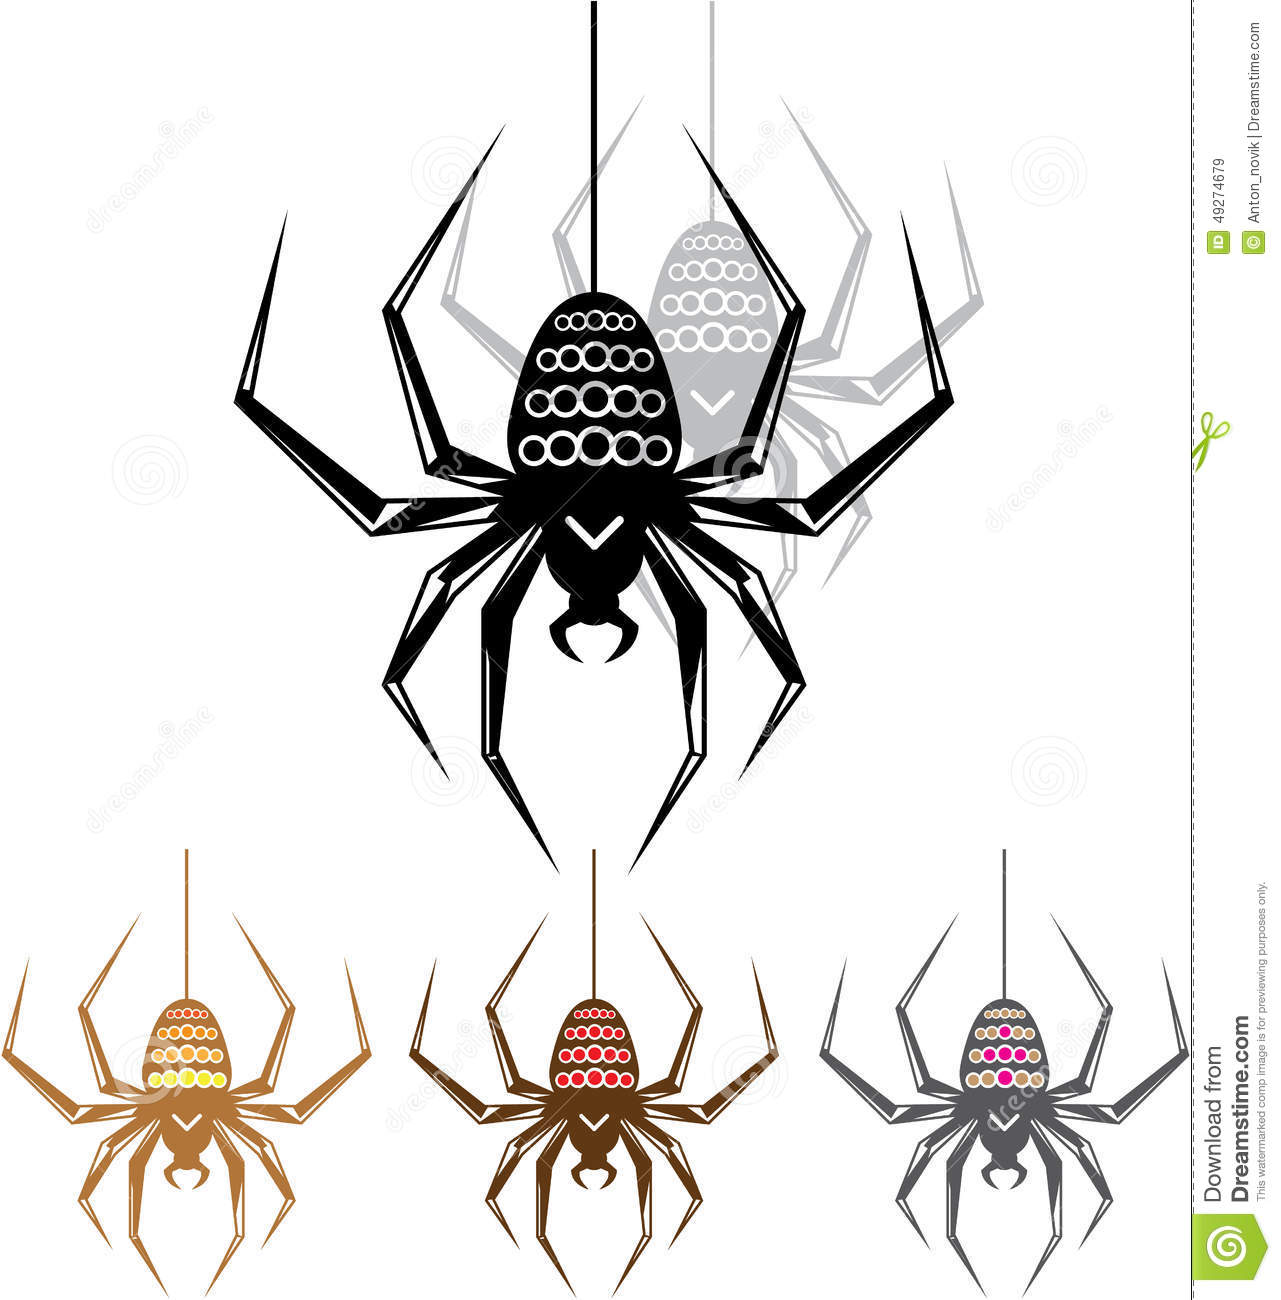 Color Spider Vector Art illustration clip-art vector.